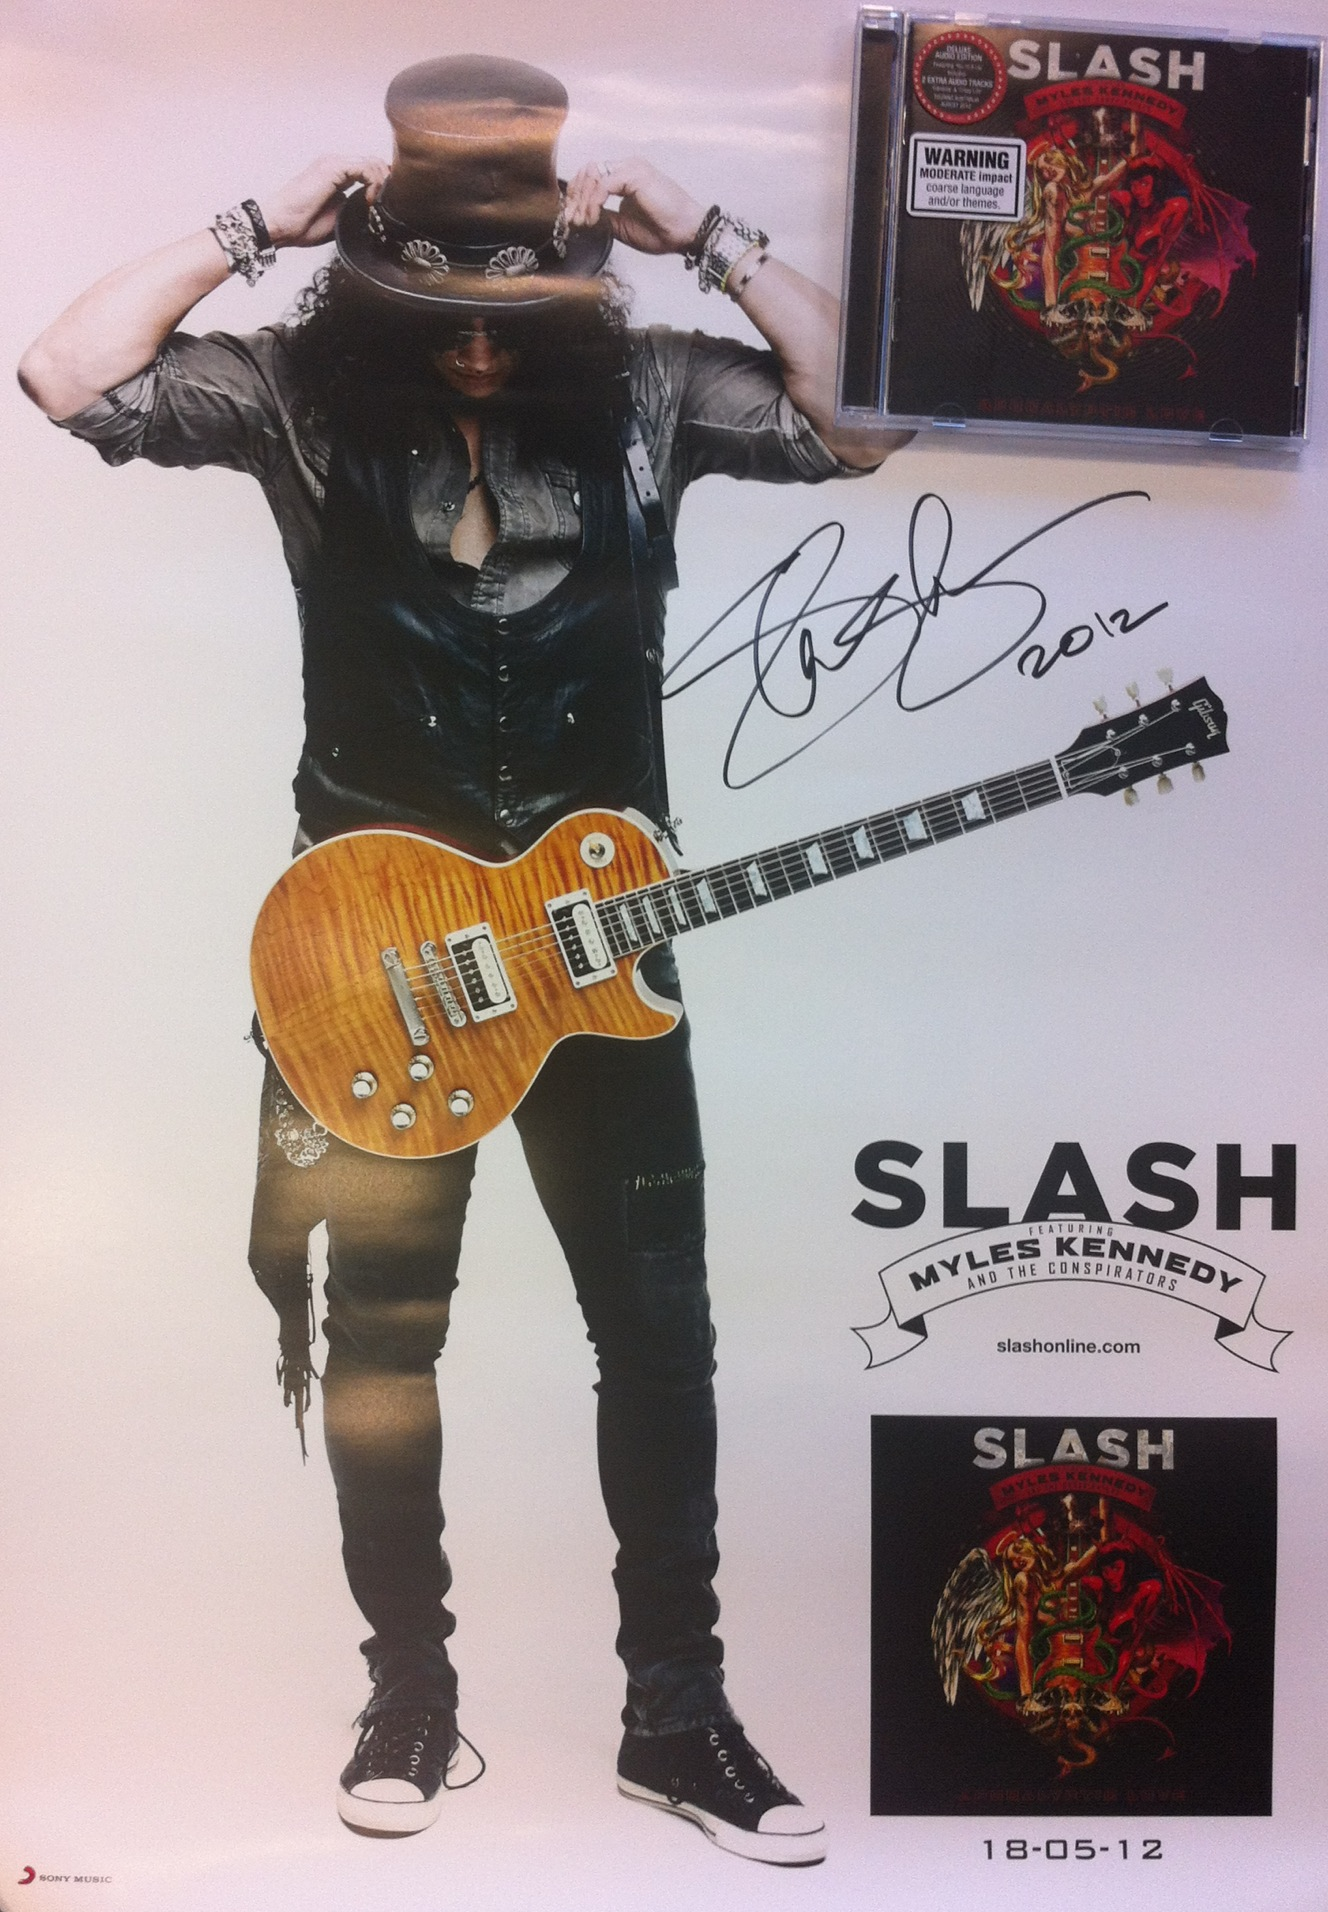 Show us your 'Slash' to win a signed poster… (CLOSED)